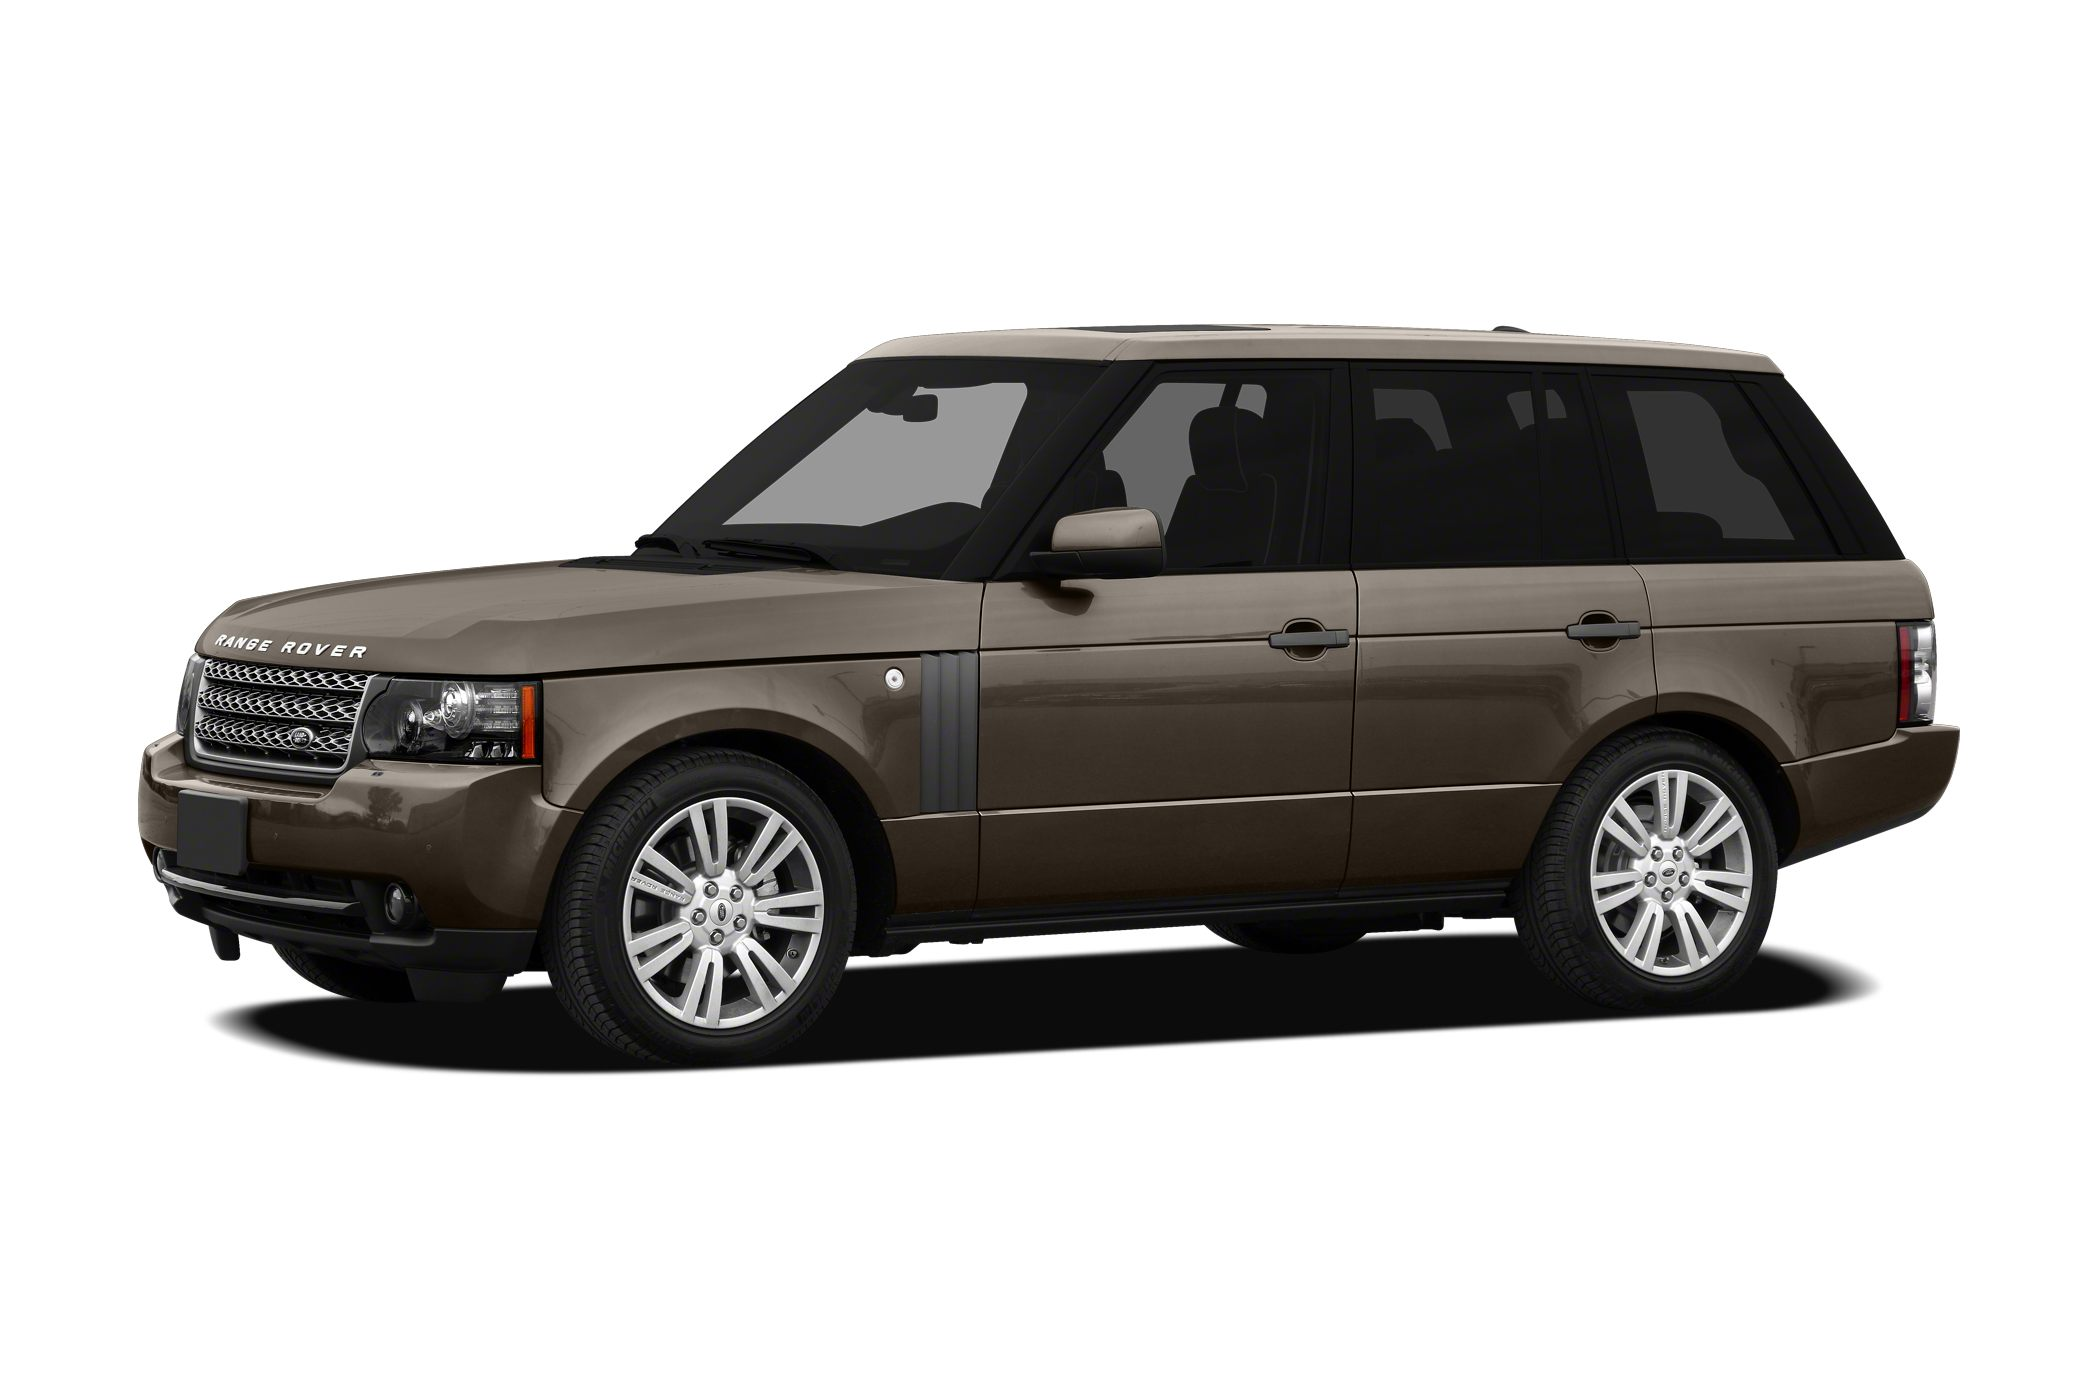 2011 Land Rover Range Rover HSE SUV for sale in Texarkana for $43,986 with 47,725 miles